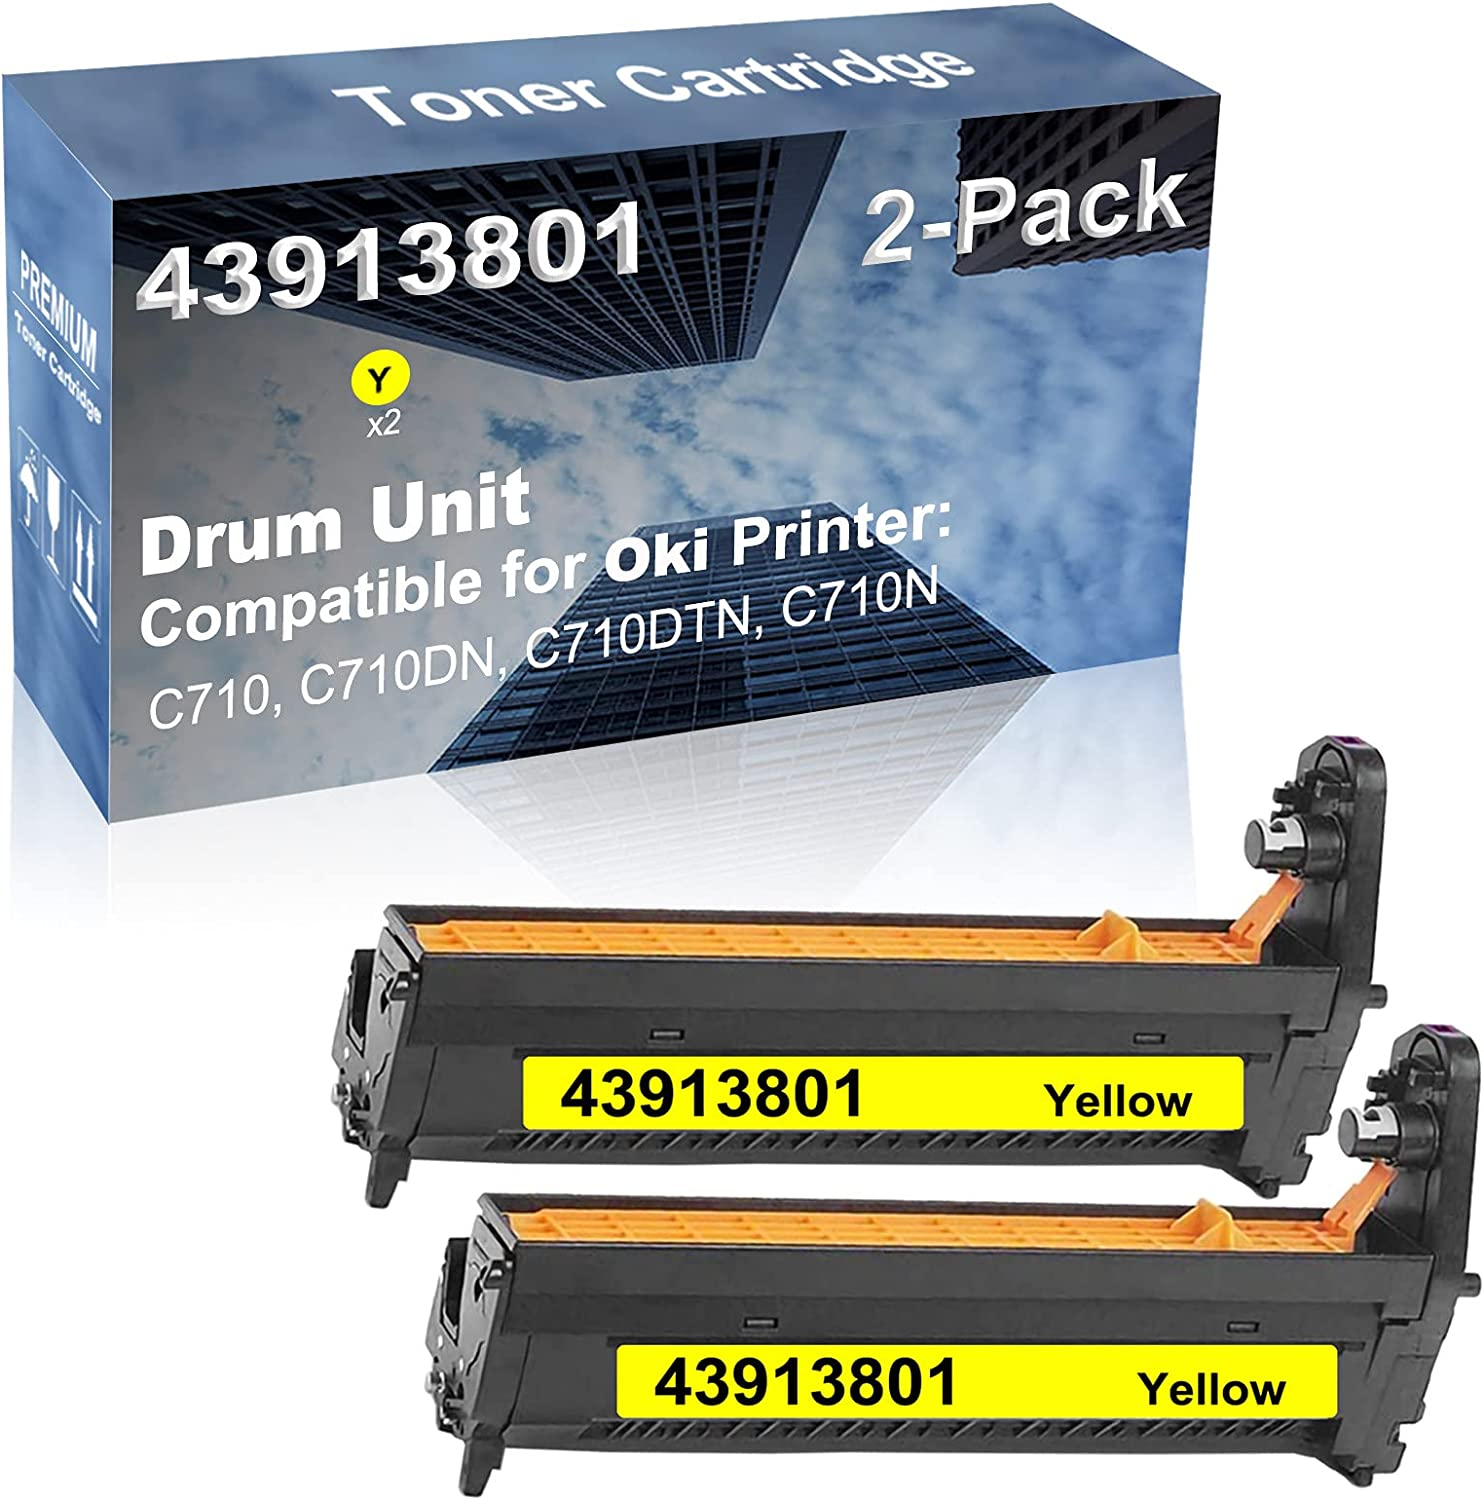 2-Pack (Yellow) Compatible High Capacity 43913801 Drum Unit Used for Oki C710, C710DN, C710DTN, C710N Printer